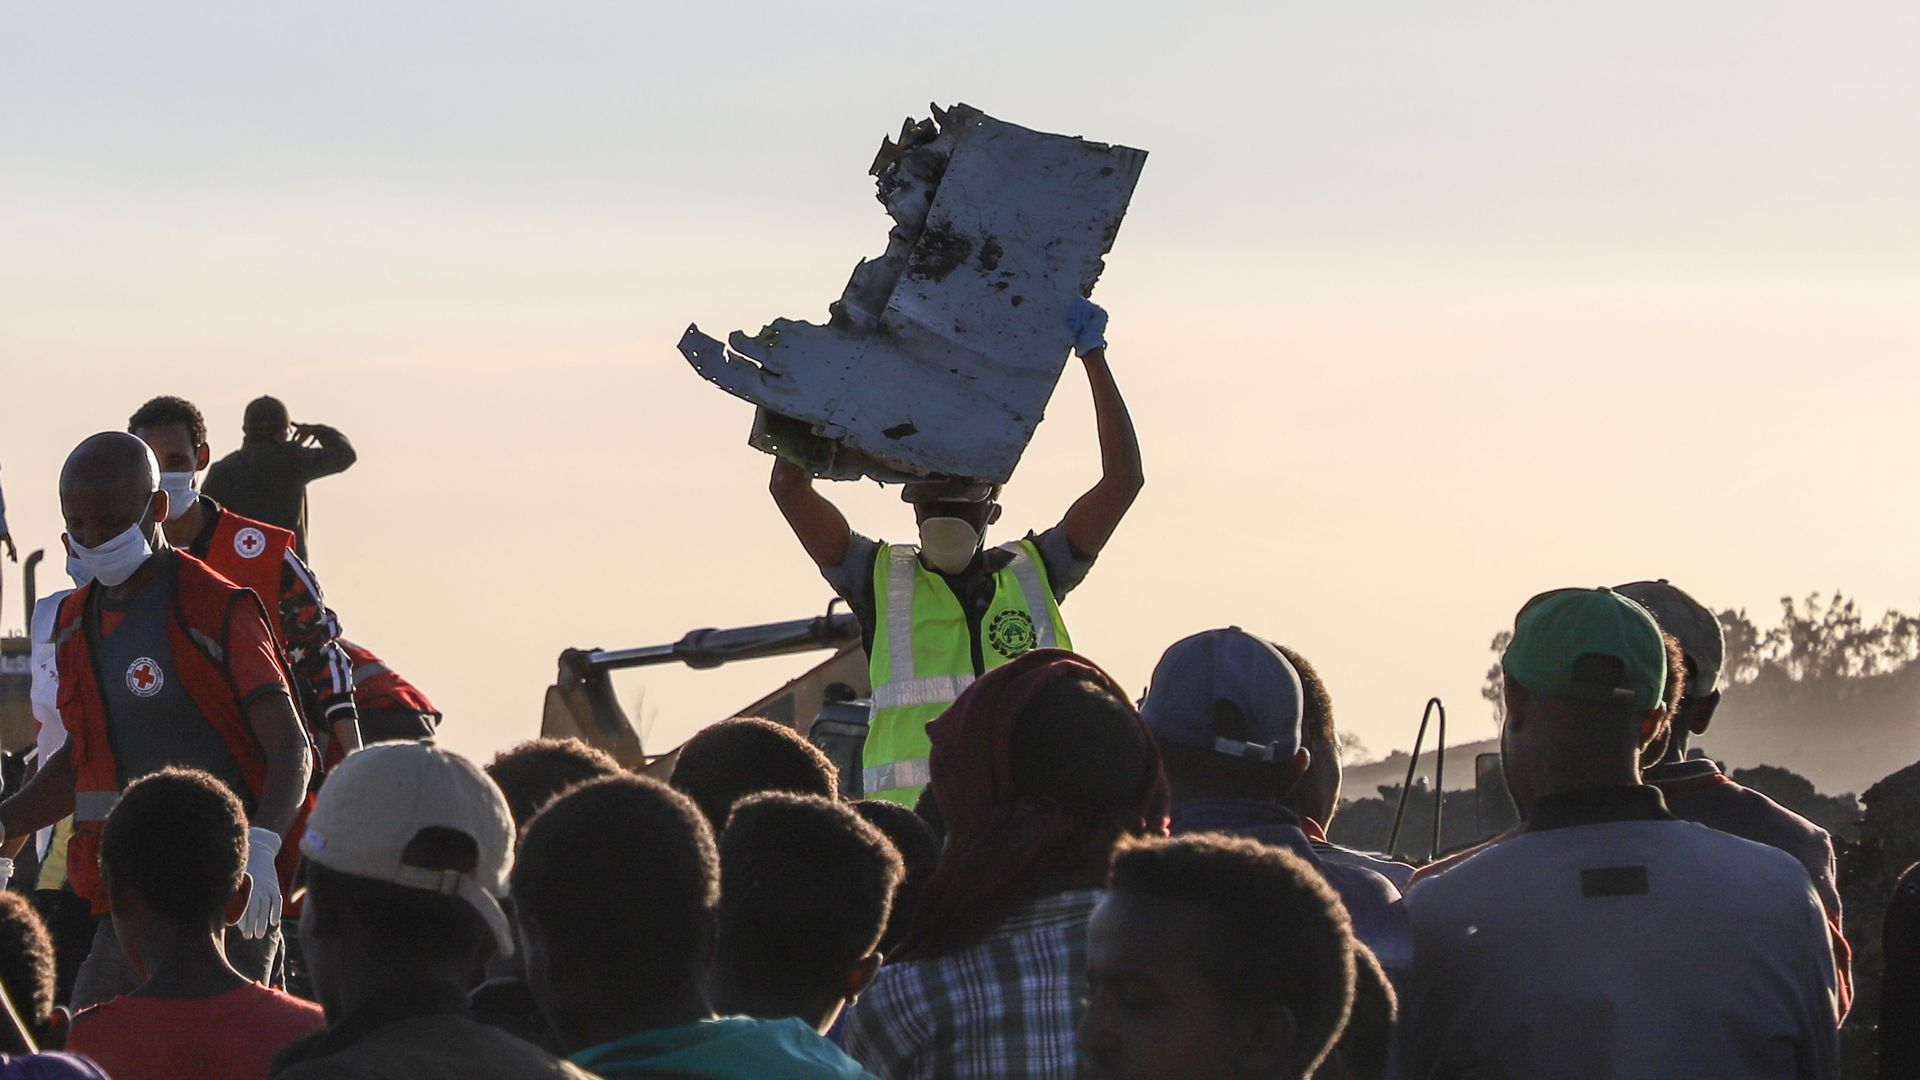 Wreckage from the Ethiopian Airlines crash.